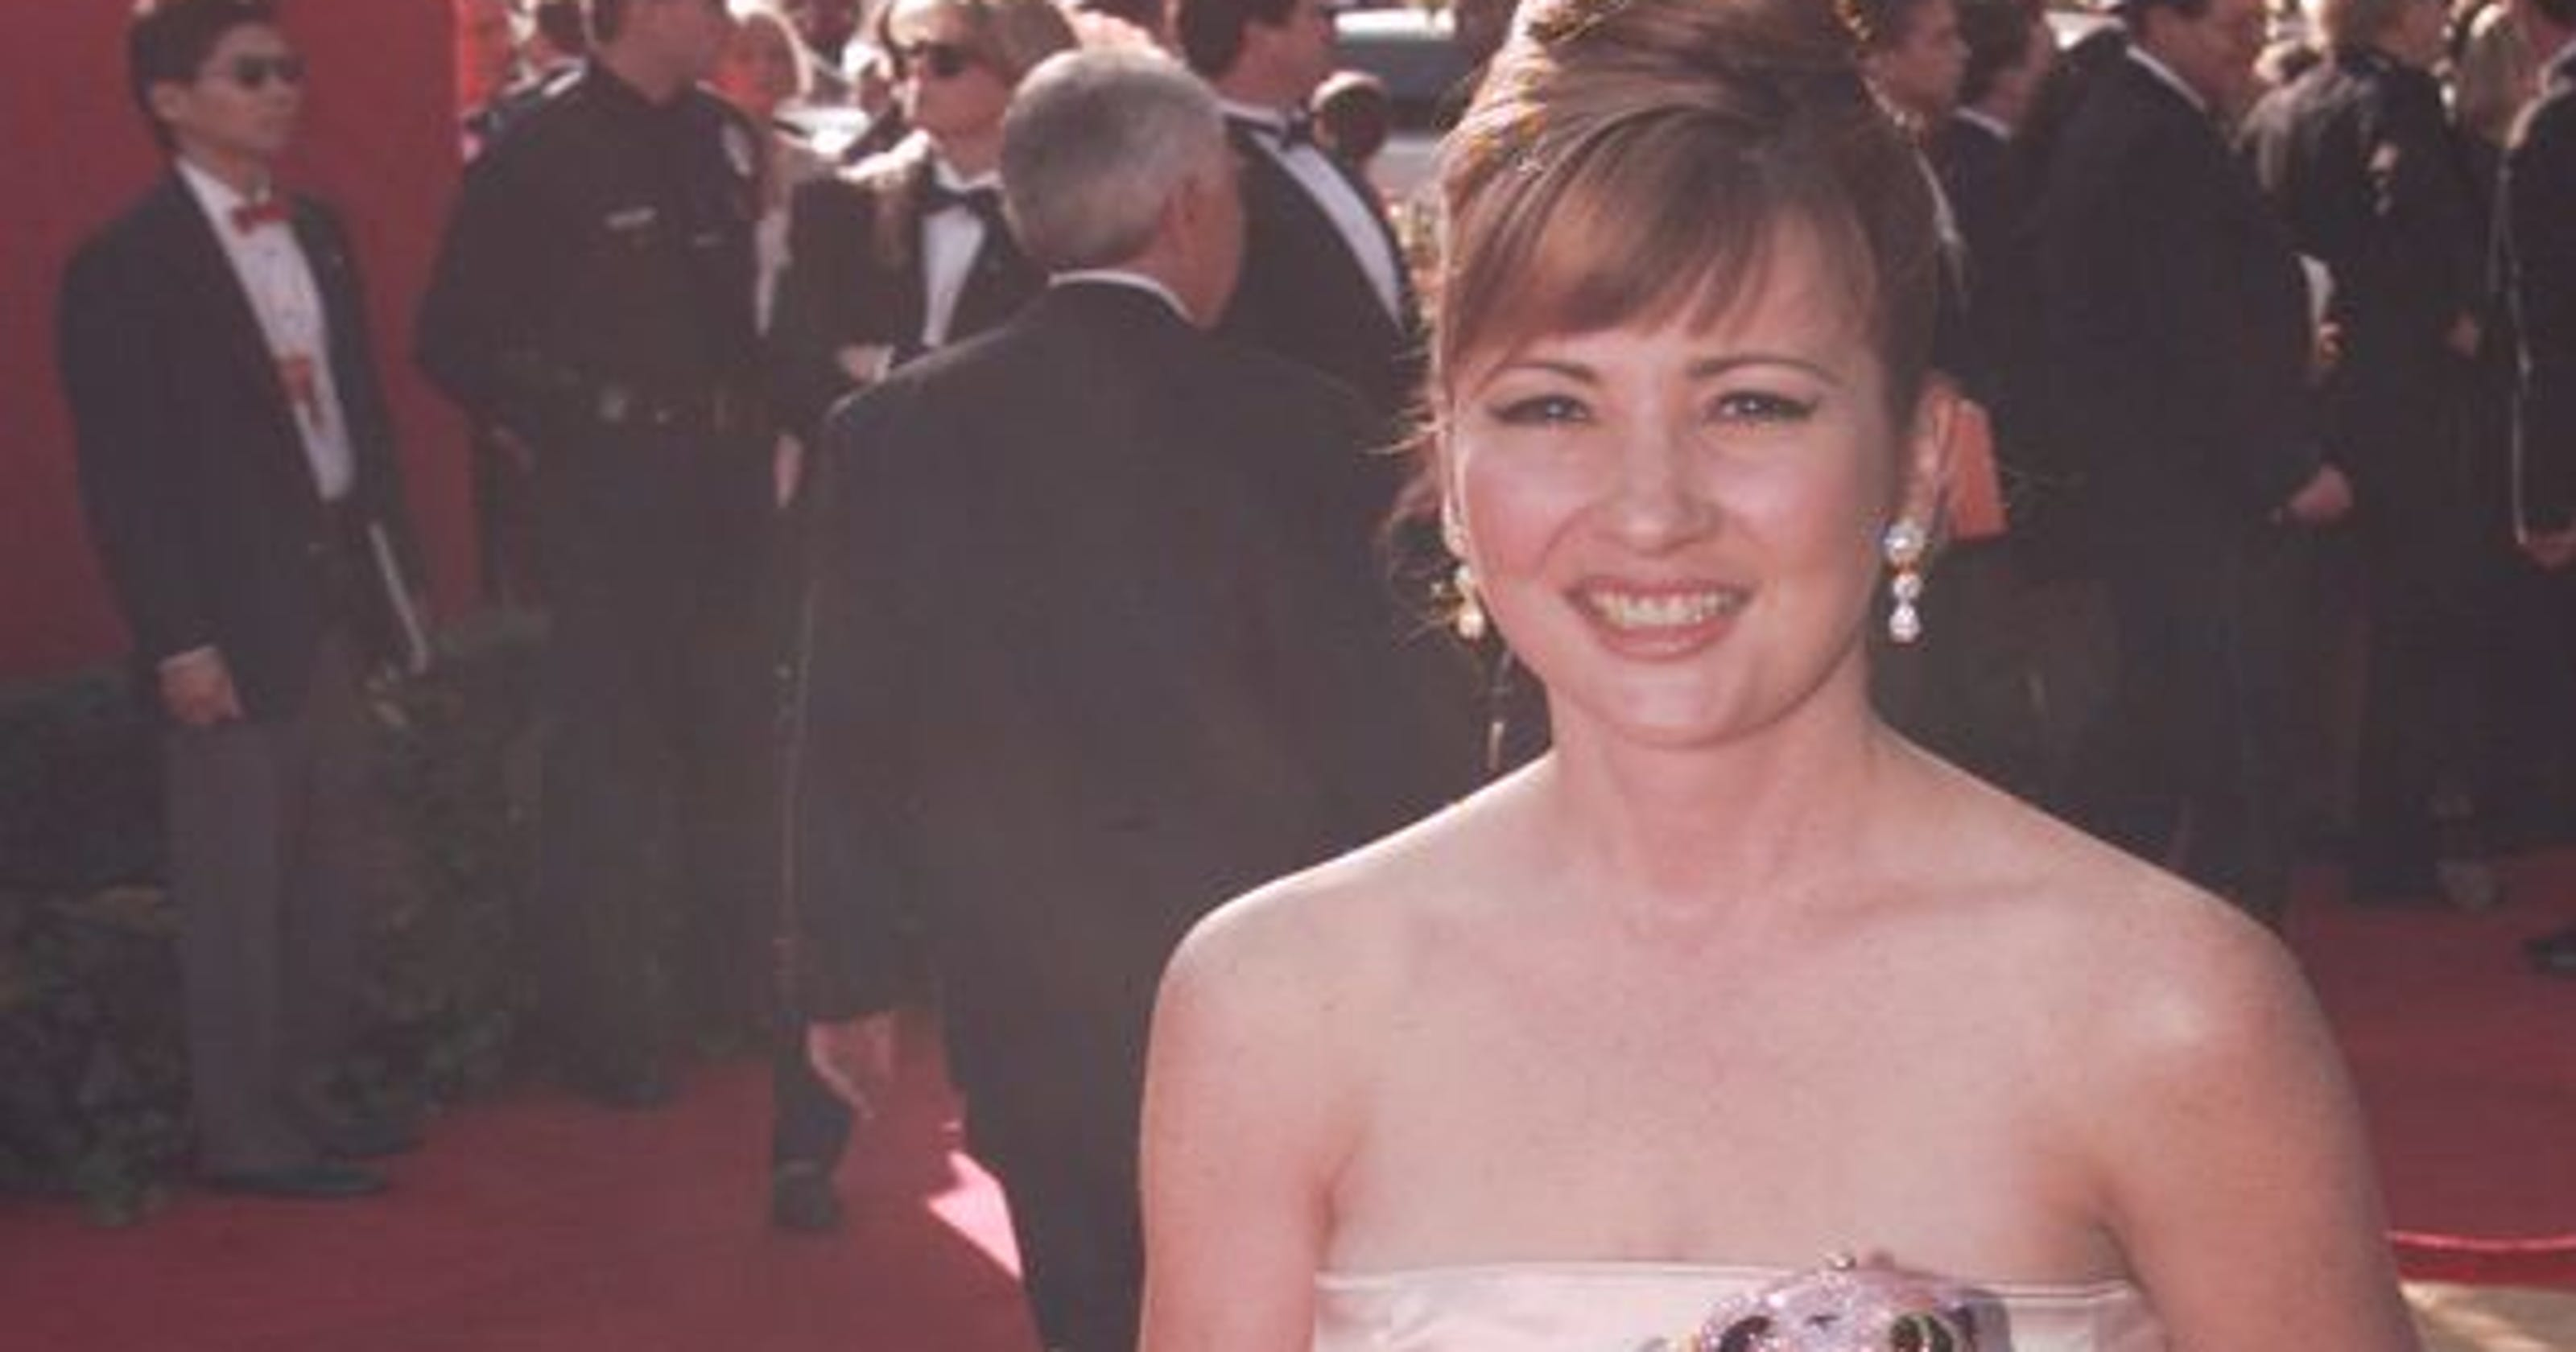 Rugrats Actress Christine Cavanaugh Dies At 51 Ne555projects And Fader Led Circuits Using Ic 555 Electronic